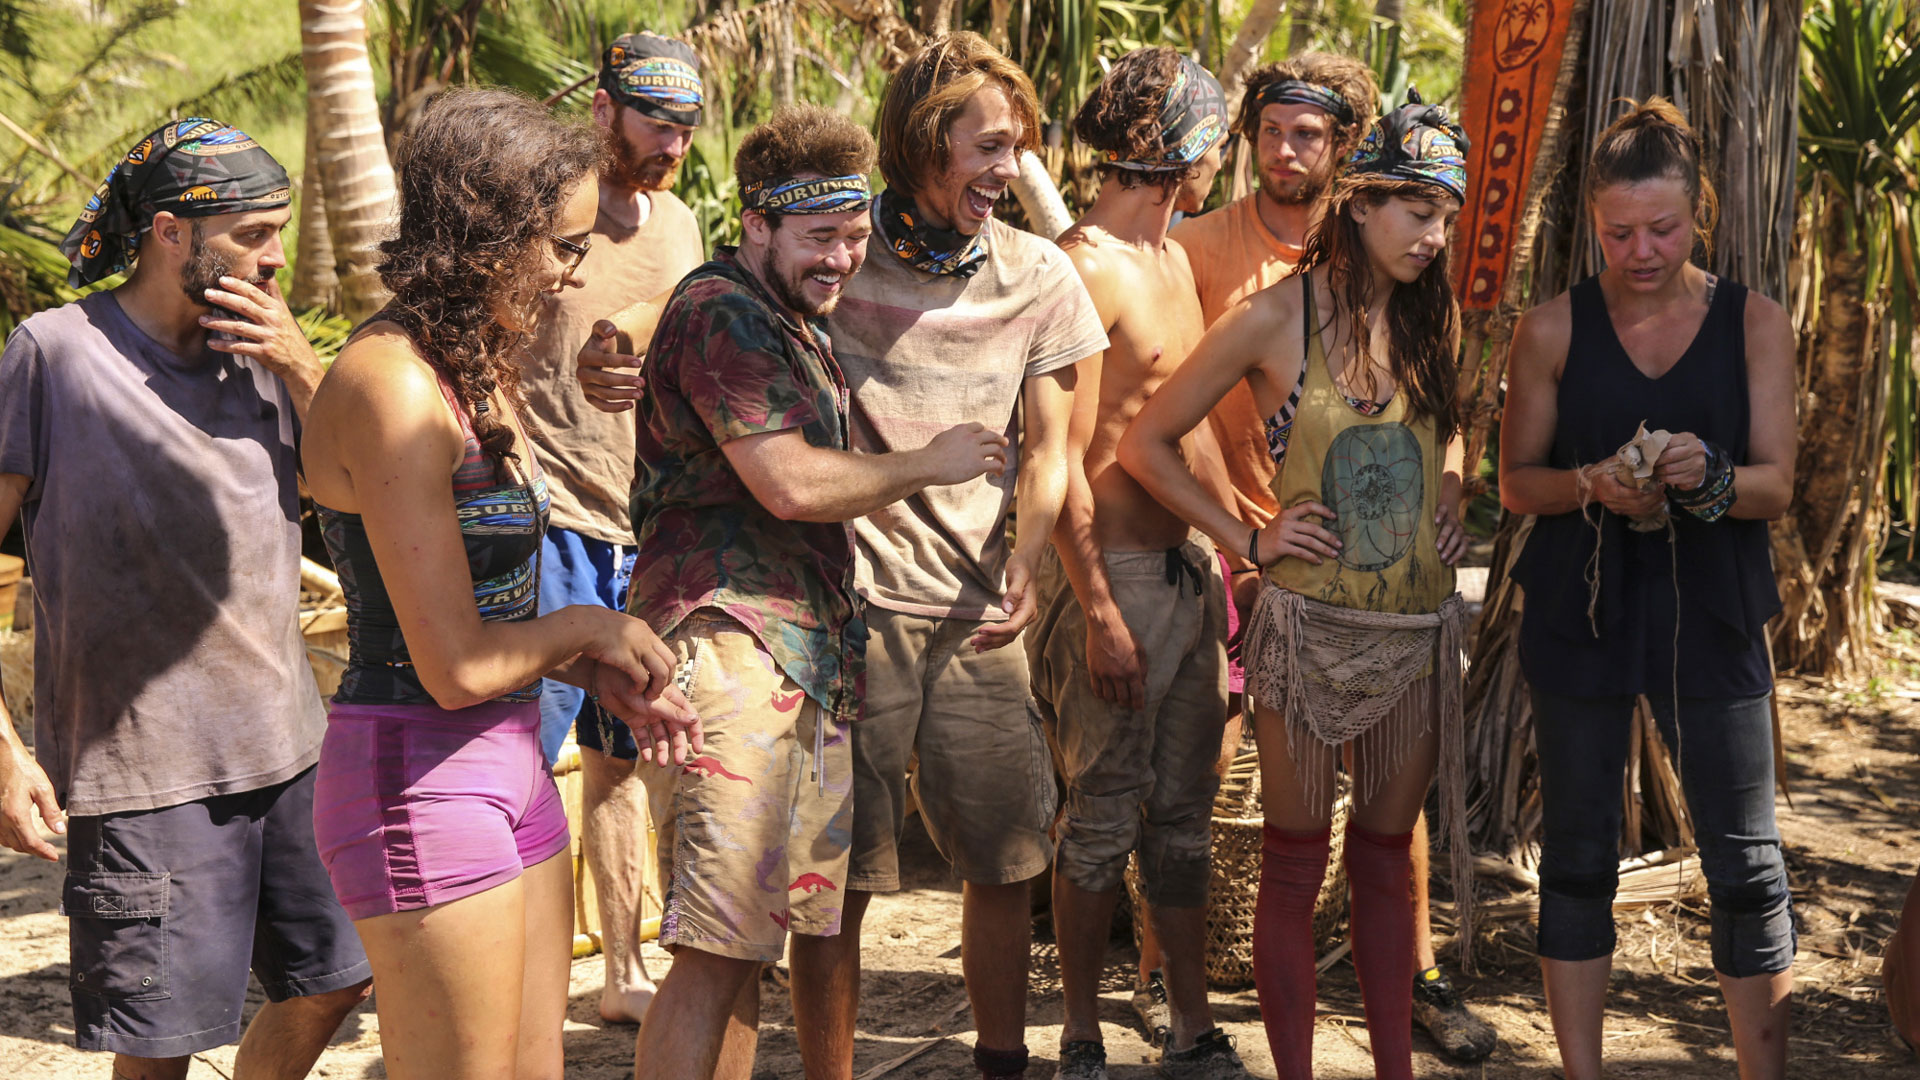 Congratulations, castaways. You made it to the merge!